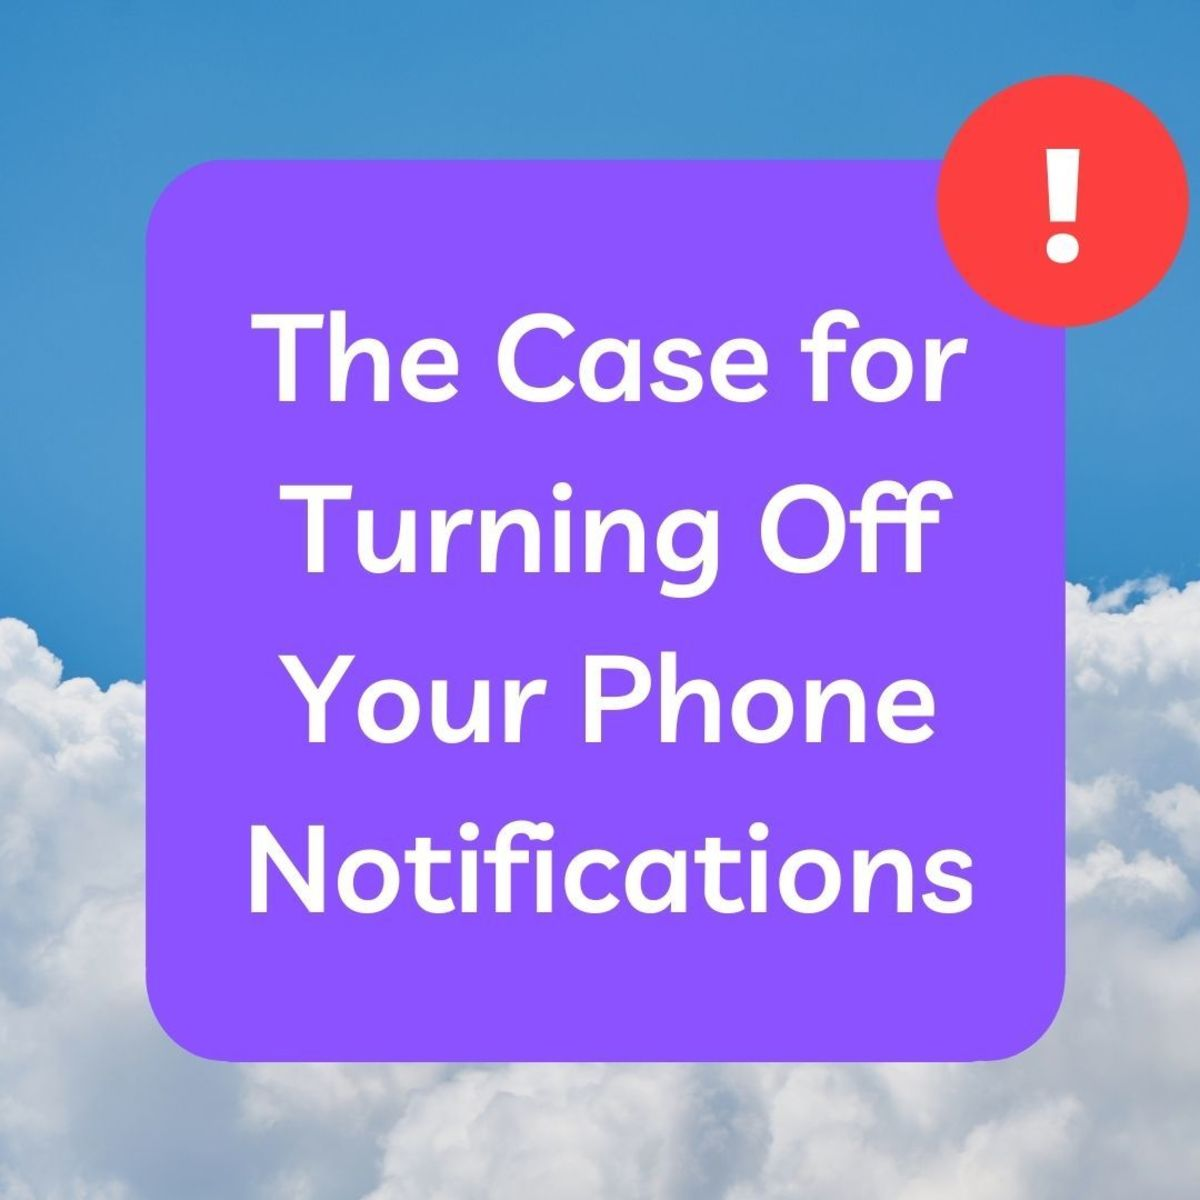 I Turned Off My Phone Notifications and Amazing Things Happened